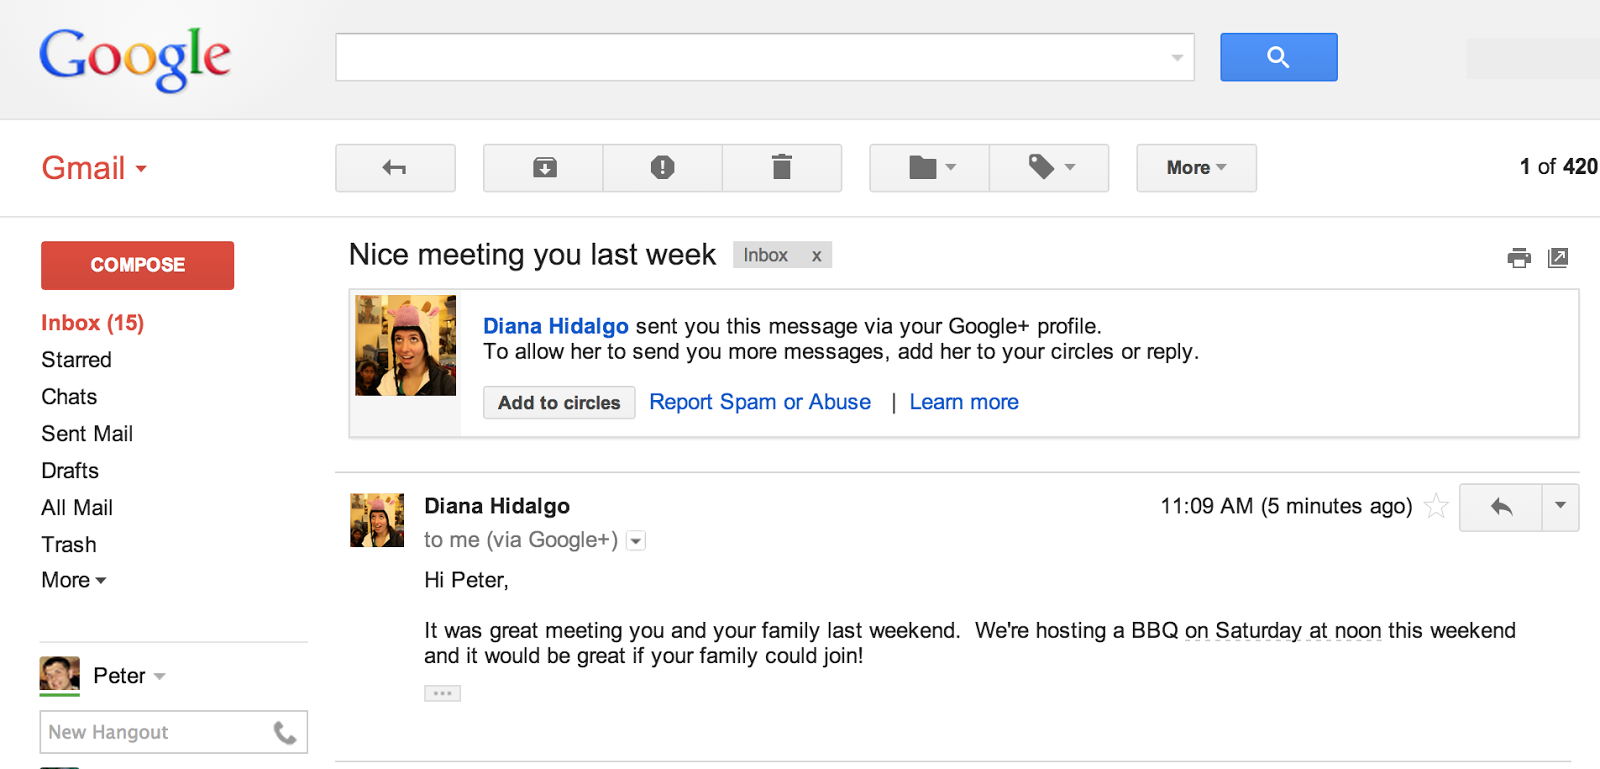 Gmail: Google+ Comes Up With A New Way To Infiltrate The Gmail